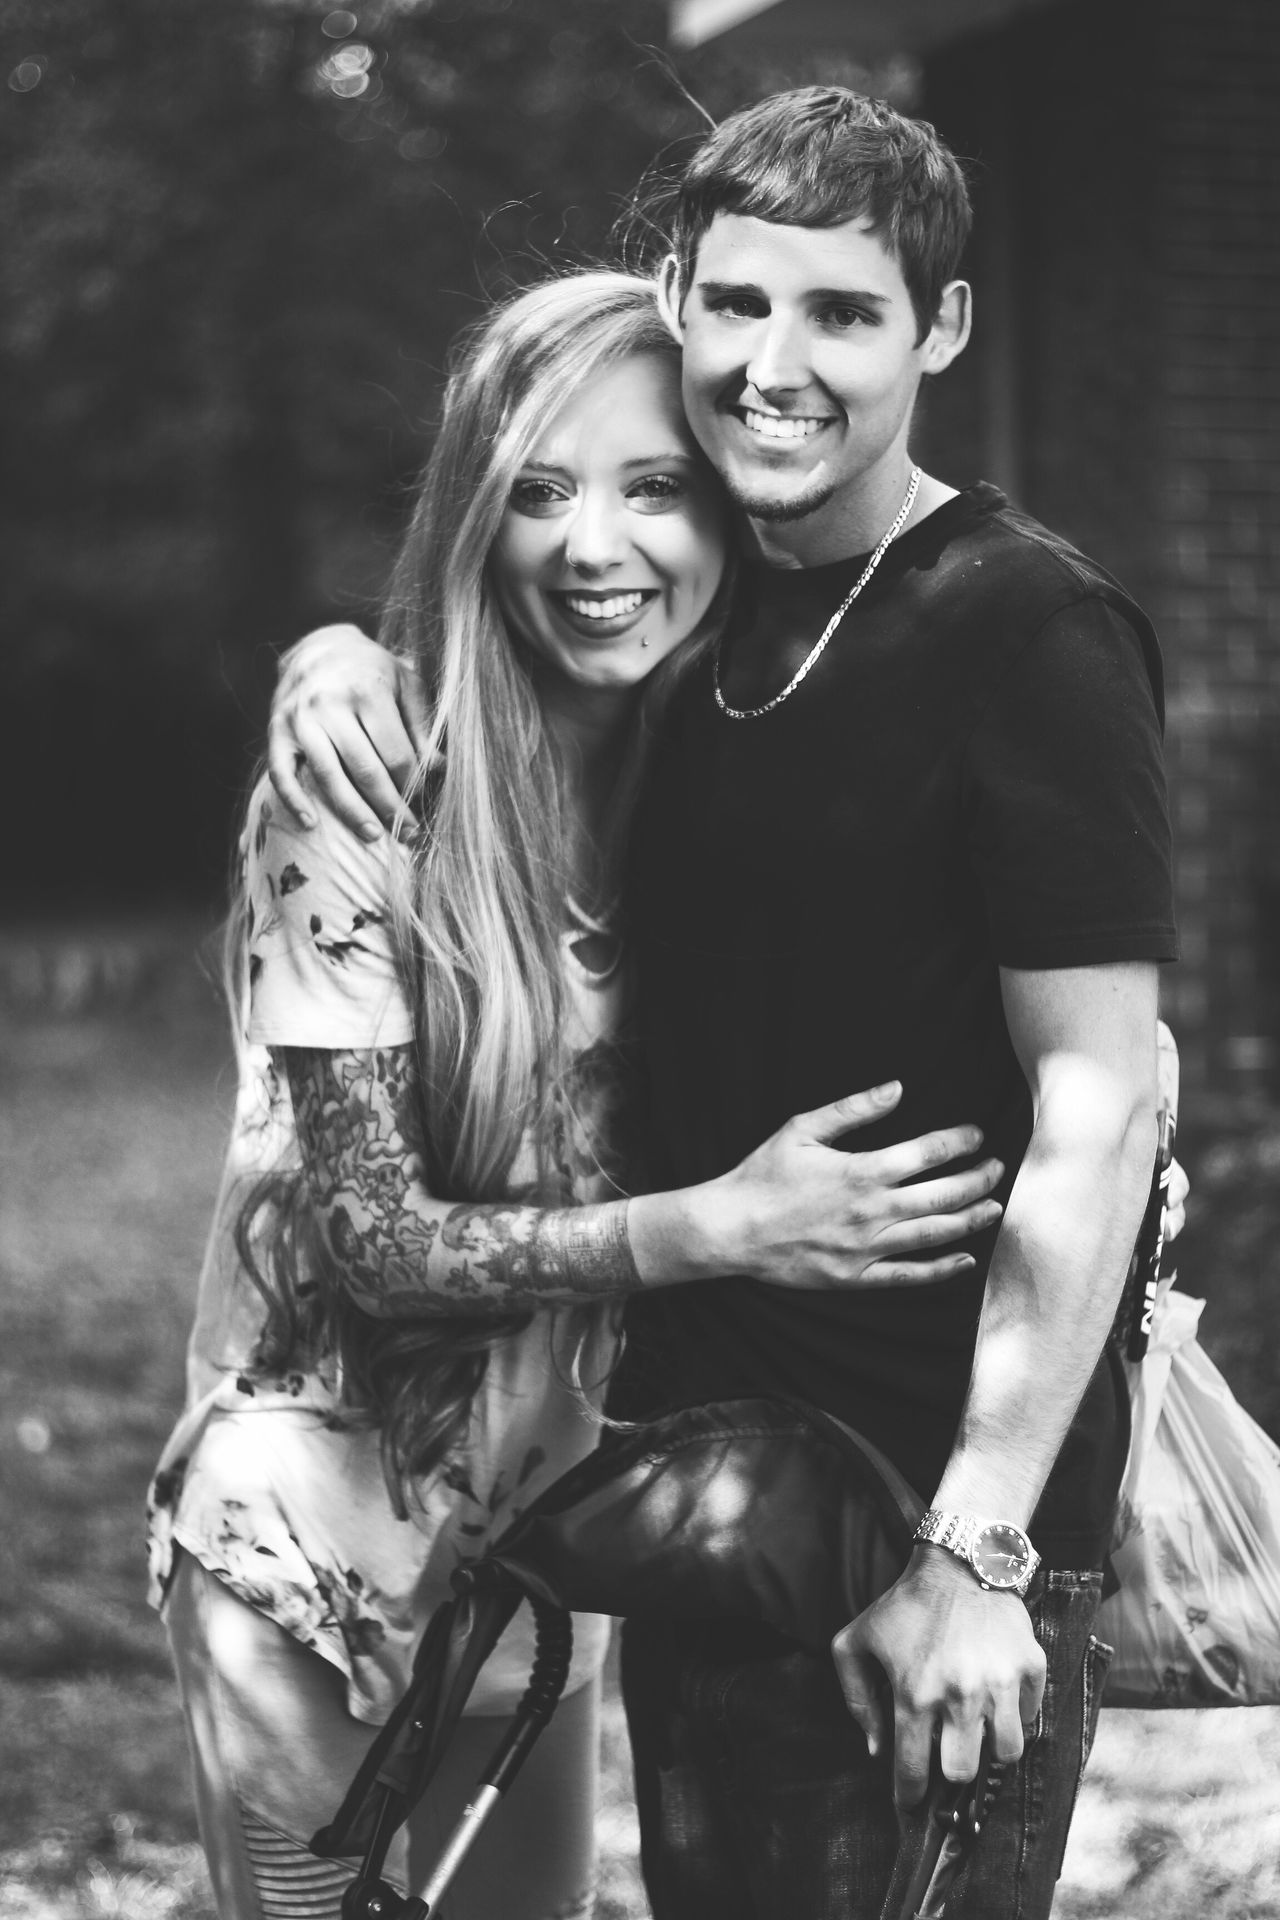 Two People Togetherness Lifestyles Young Adult Young Women Real People Smiling Love Leisure Activity Happiness Young Men Heterosexual Couple Outdoors Casual Clothing Couple - Relationship Portrait Looking At Camera Front View Bonding Day